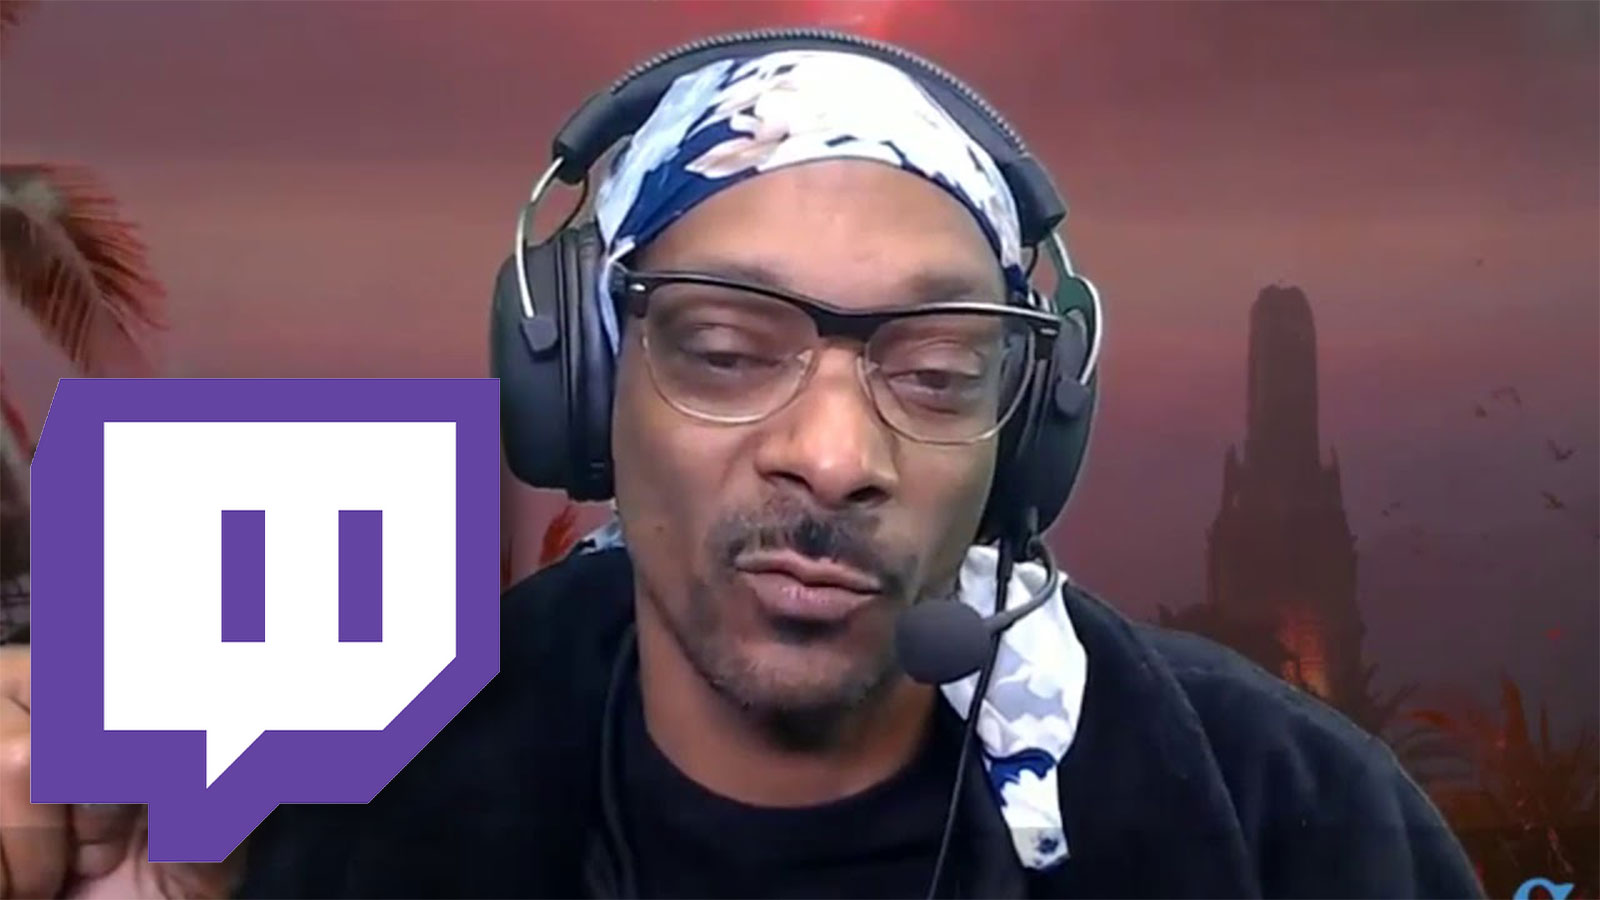 The rap legend might have left his desk in a fit of Madden-induced rage, but his stream kept on going and going for hours.